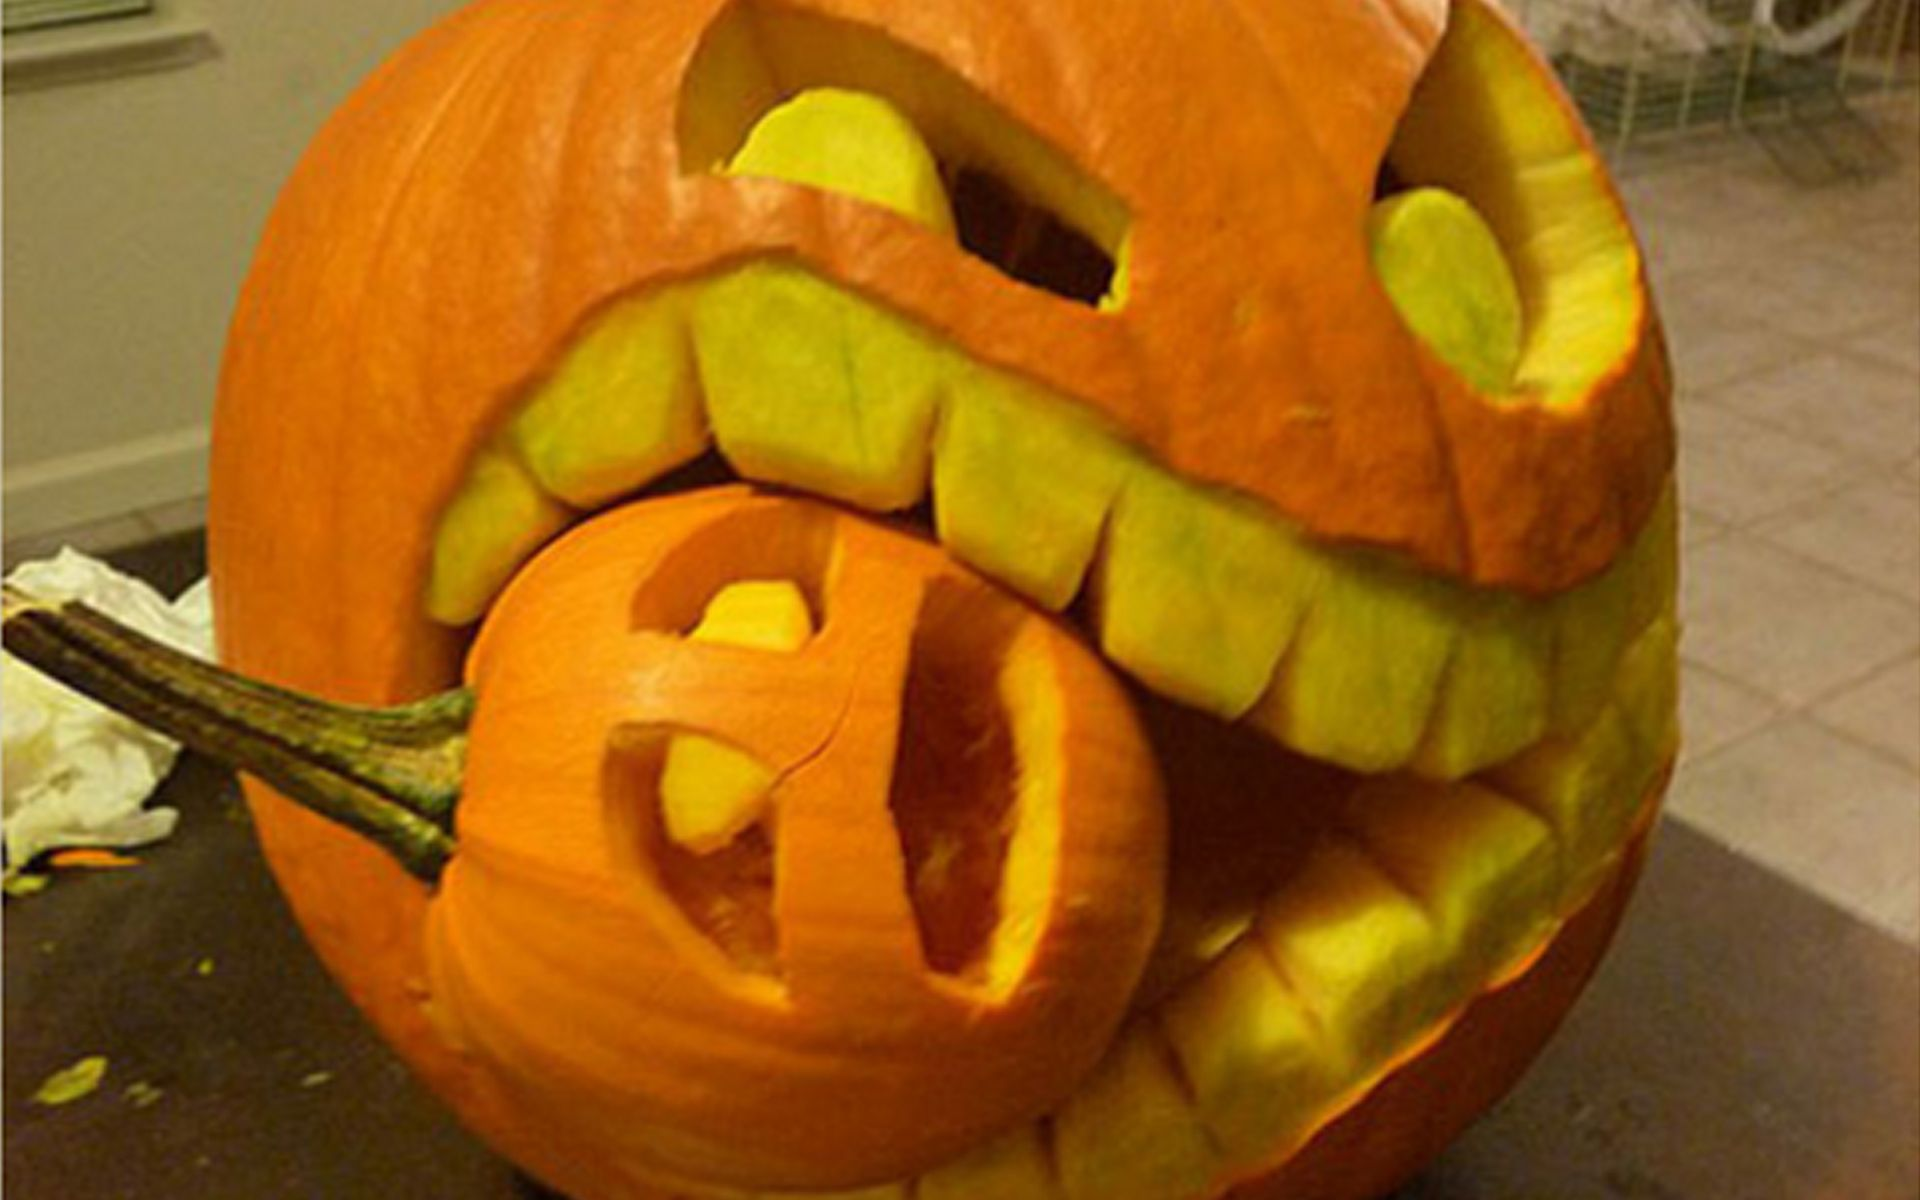 17 best images about pumpkin carving ideas on pinterest halloween pumpkins pumpkins and pumpkin carving templates - Funny Halloween Pumpkin Carvings